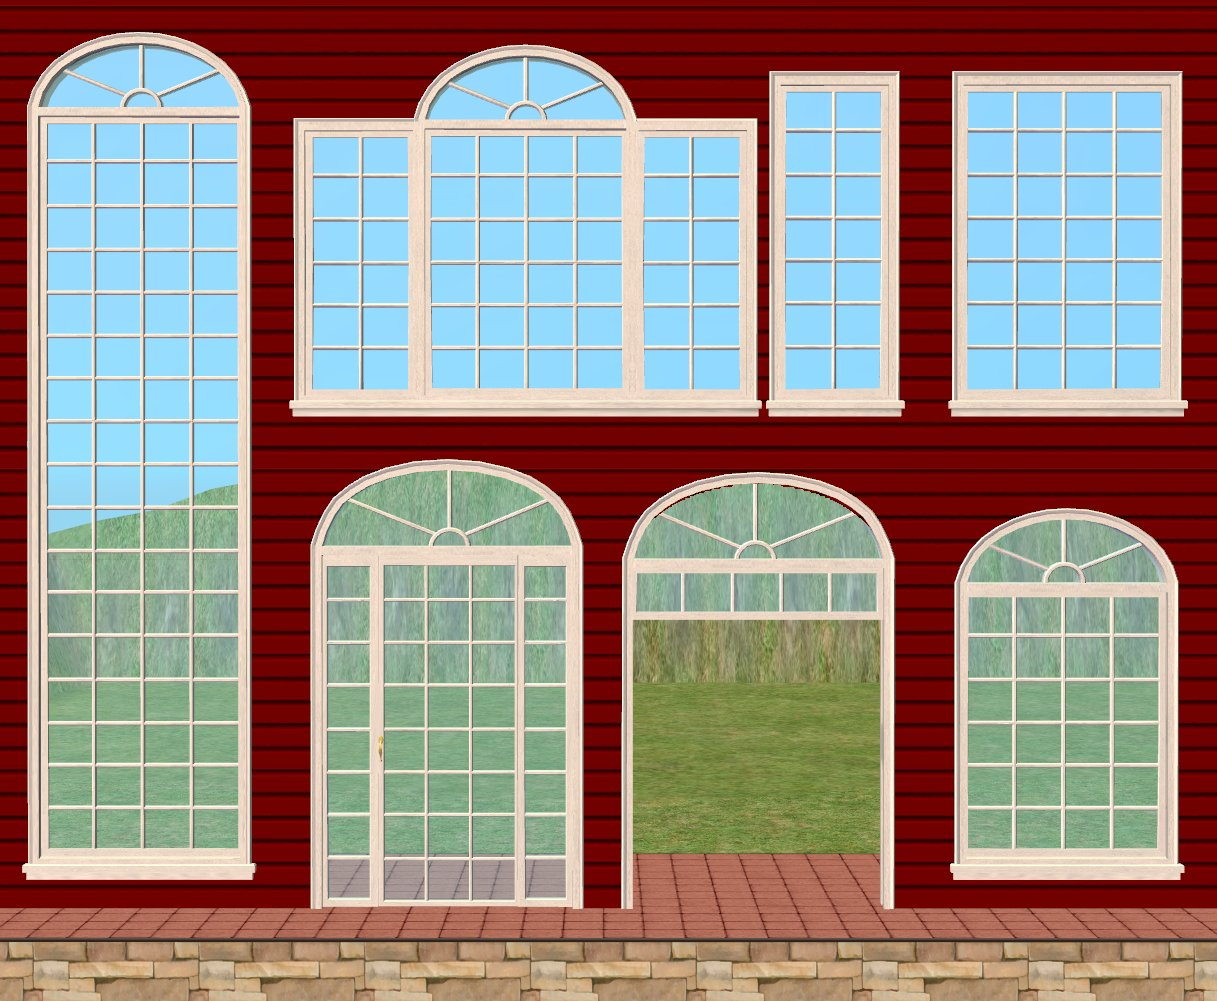 Mod the sims re do la fen tre window expansion set for Fenetre windows